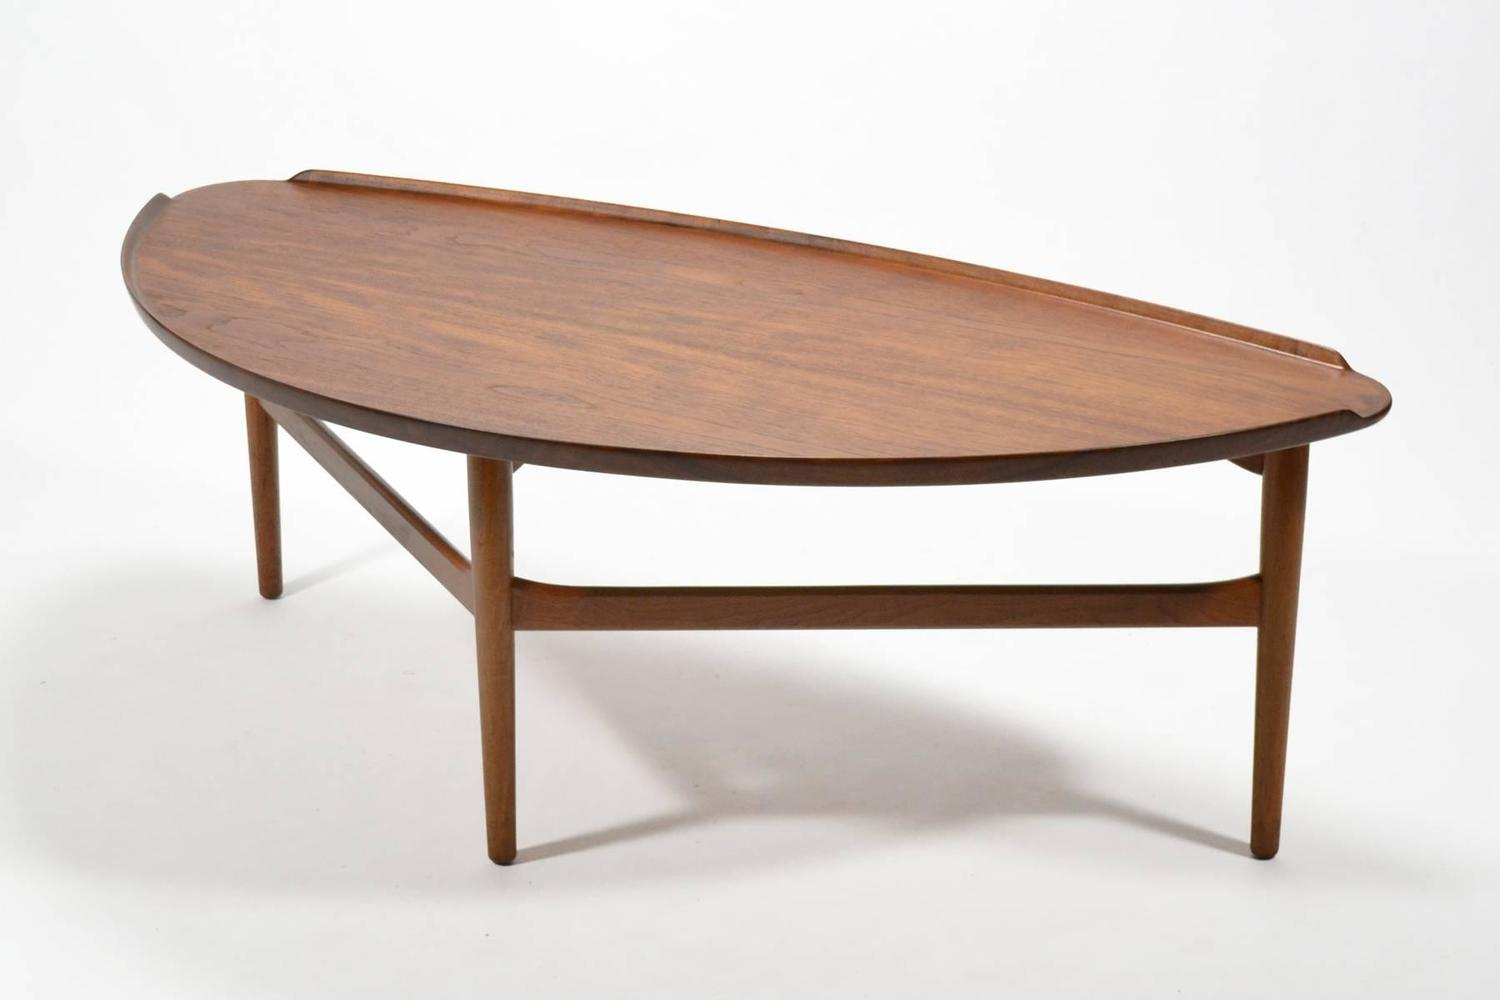 Finn juhl teak coffee table by baker at 1stdibs Baker coffee table